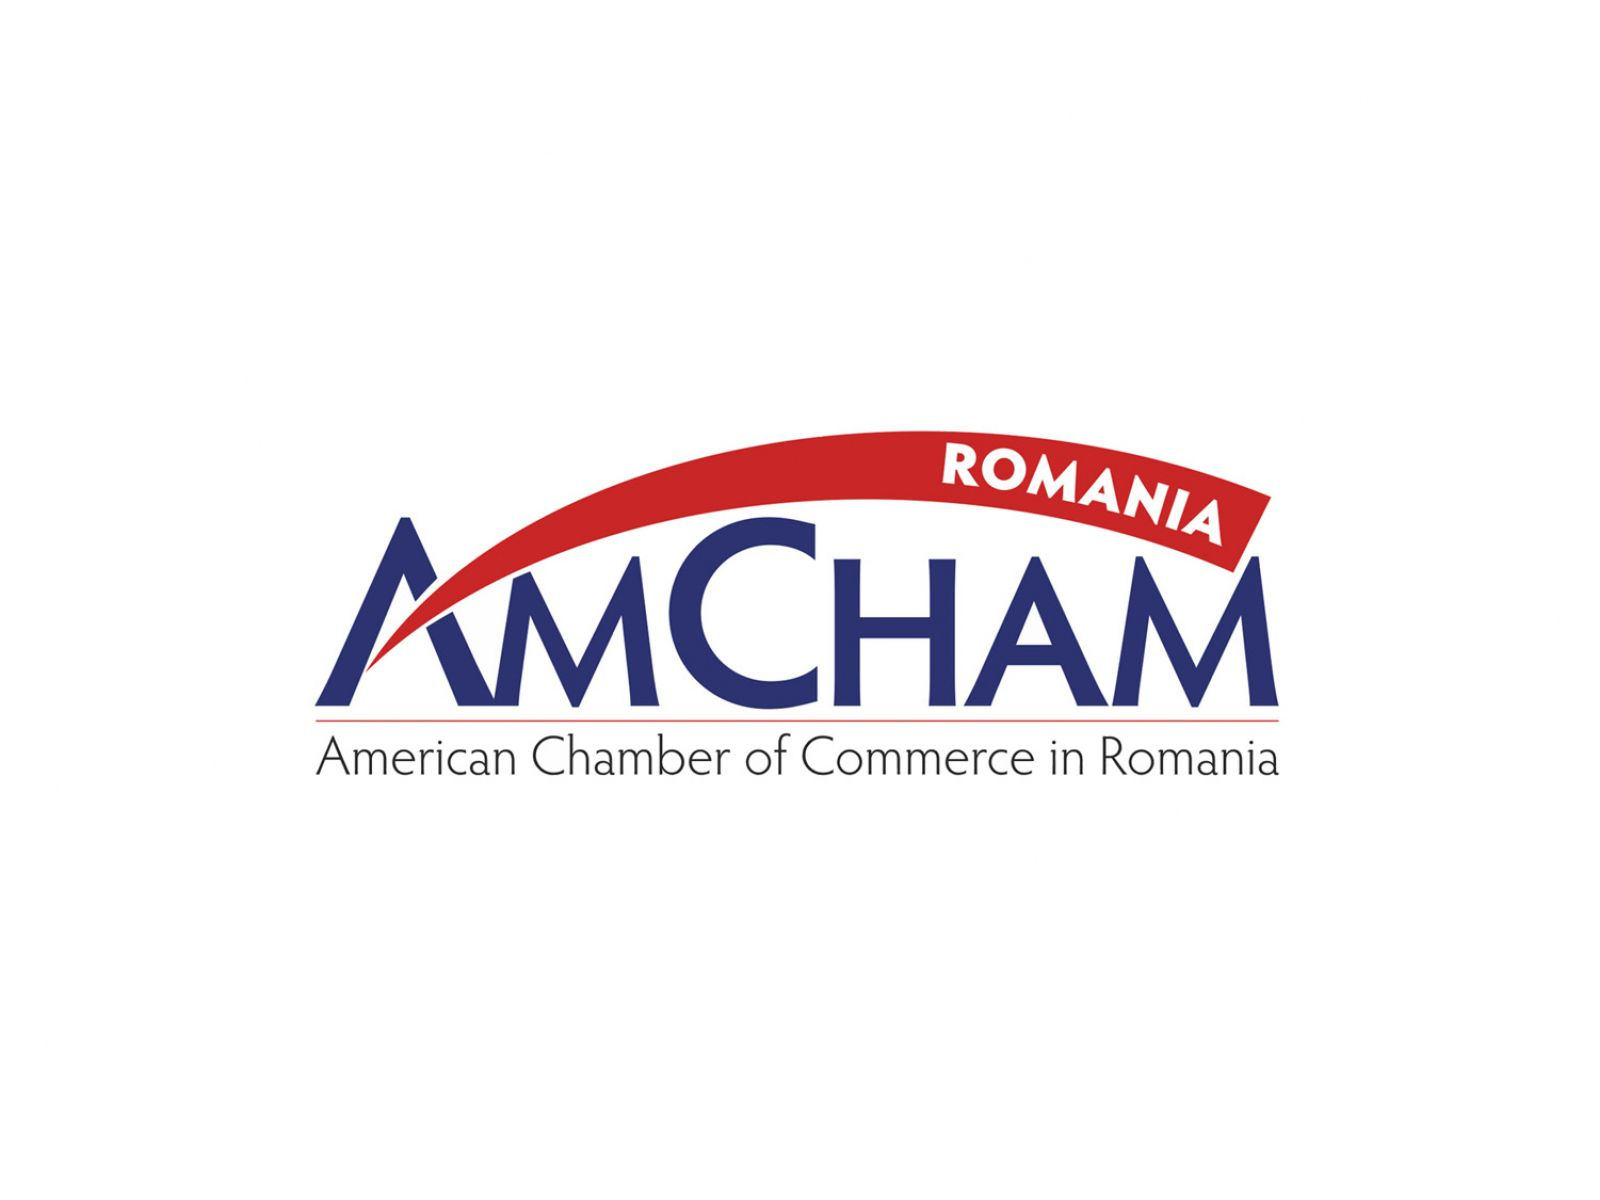 Affiliation with American Chamber of Commerce in Romania